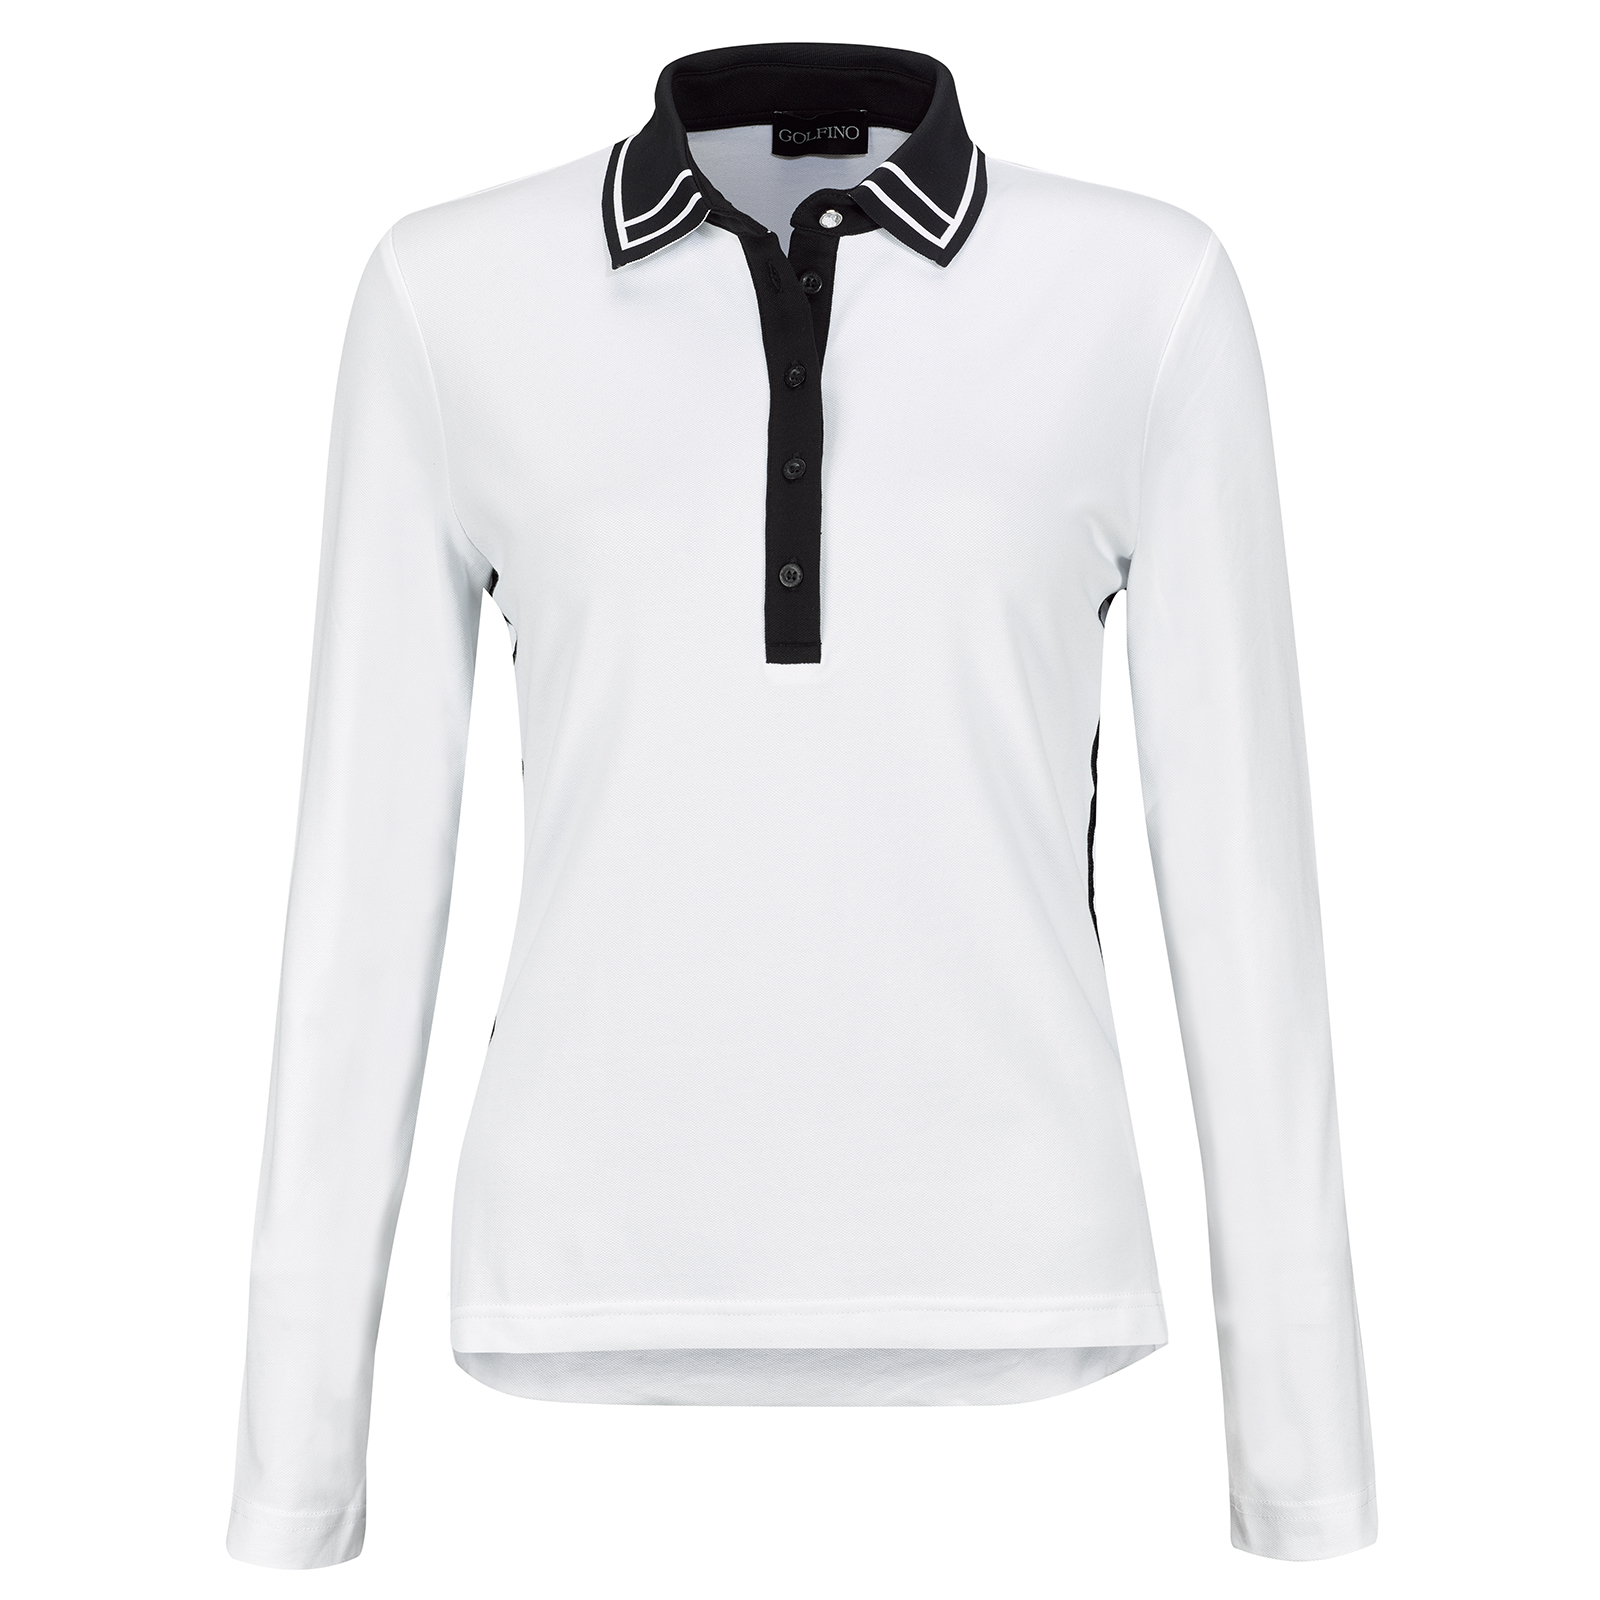 Ladies' long-sleeve functional Sun Protection golf polo